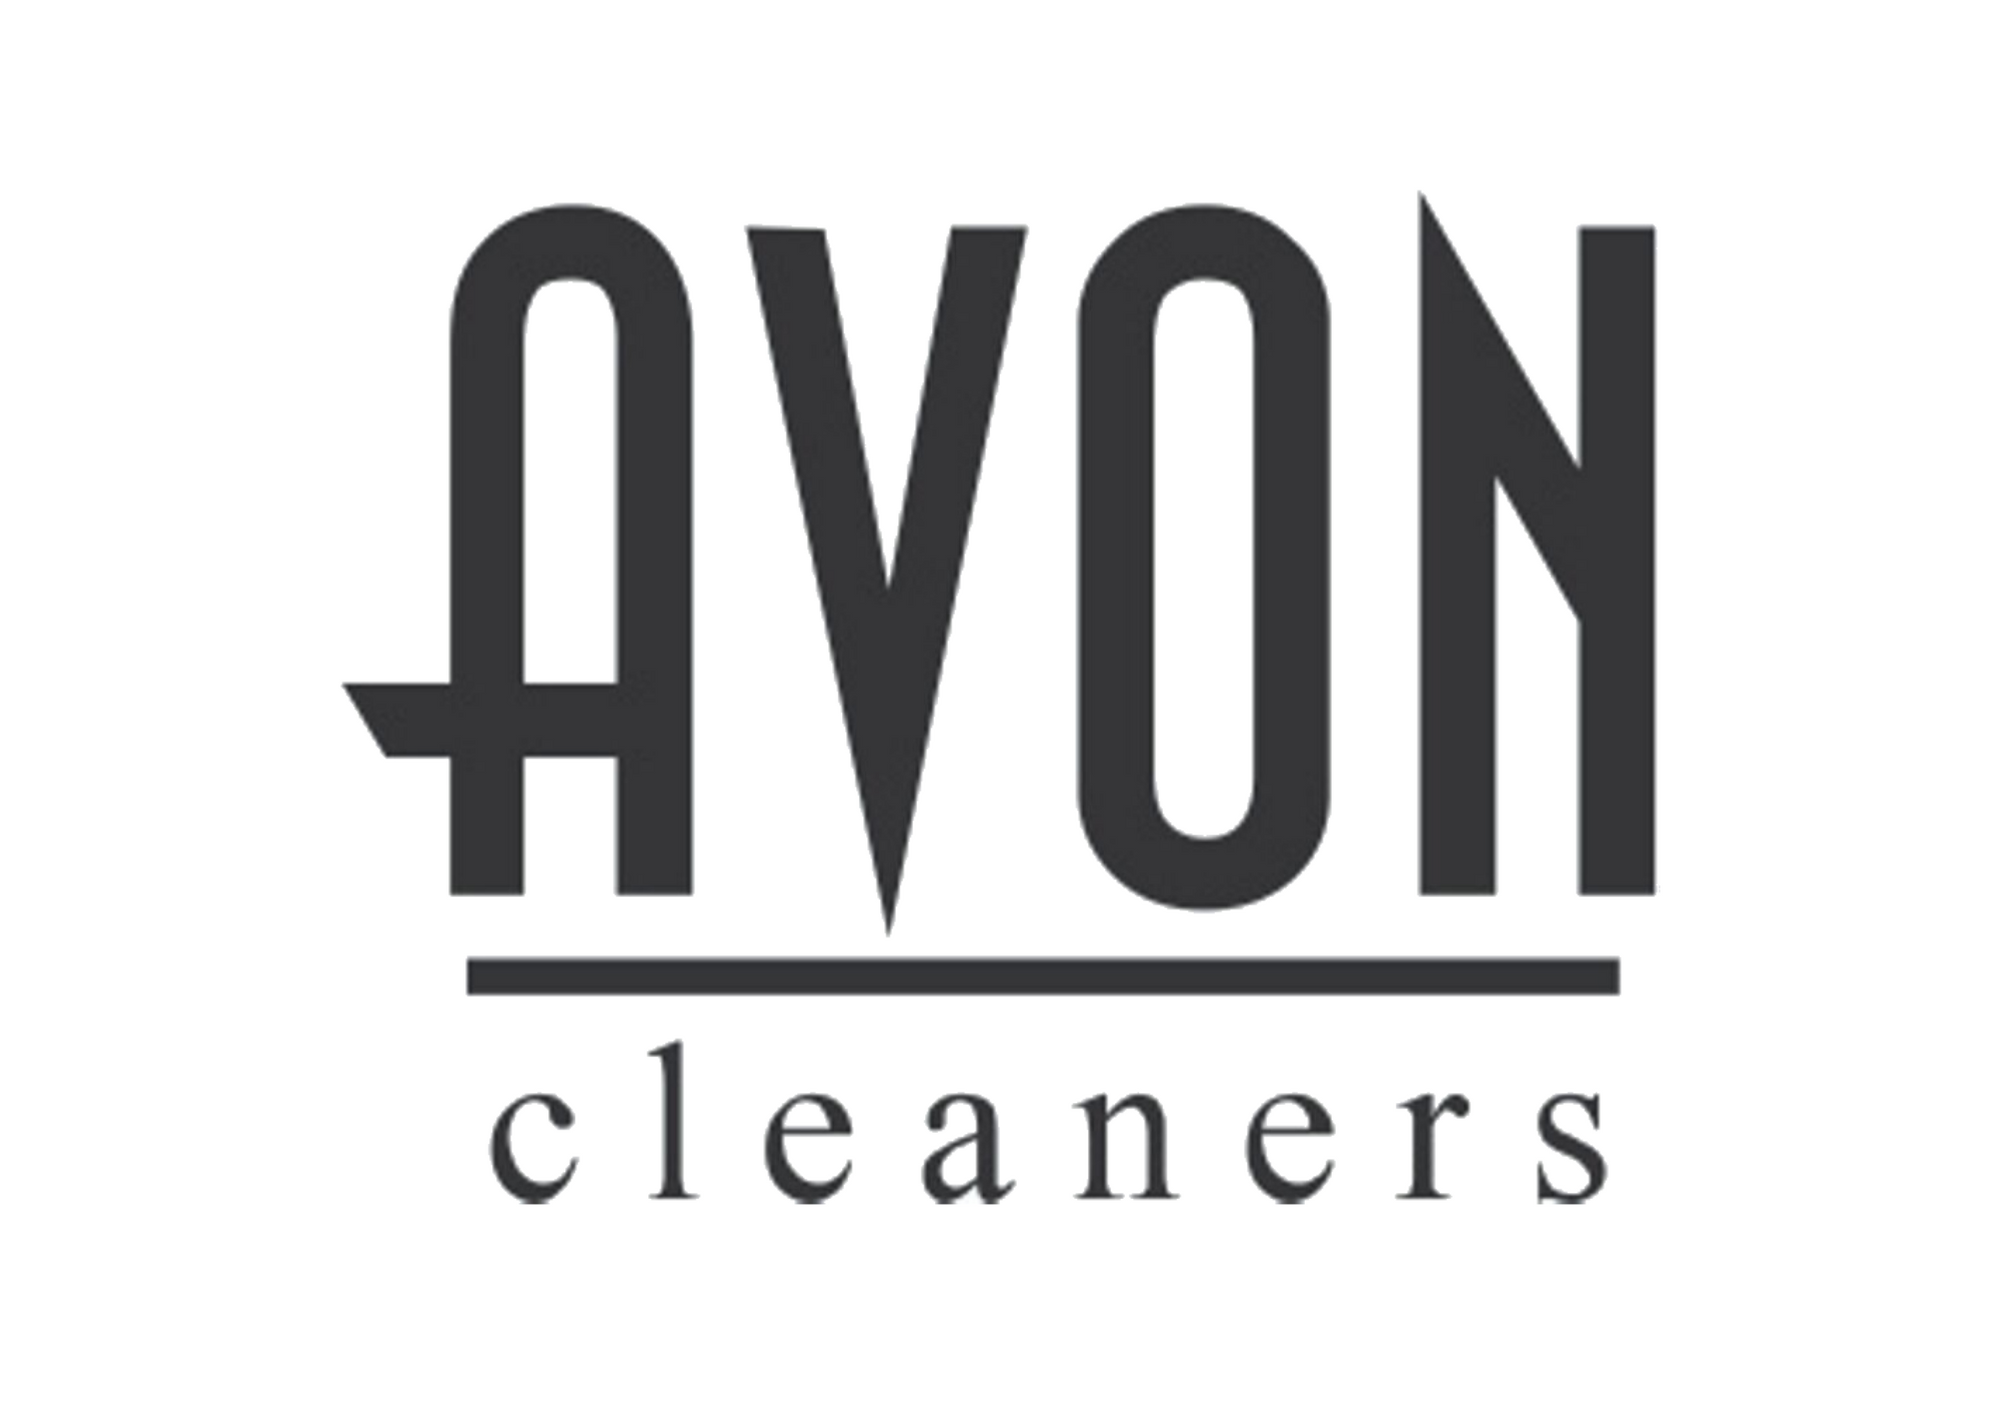 Dallas' Best Cleaner for professional wardrobes, leisure apparel, housewares   more.